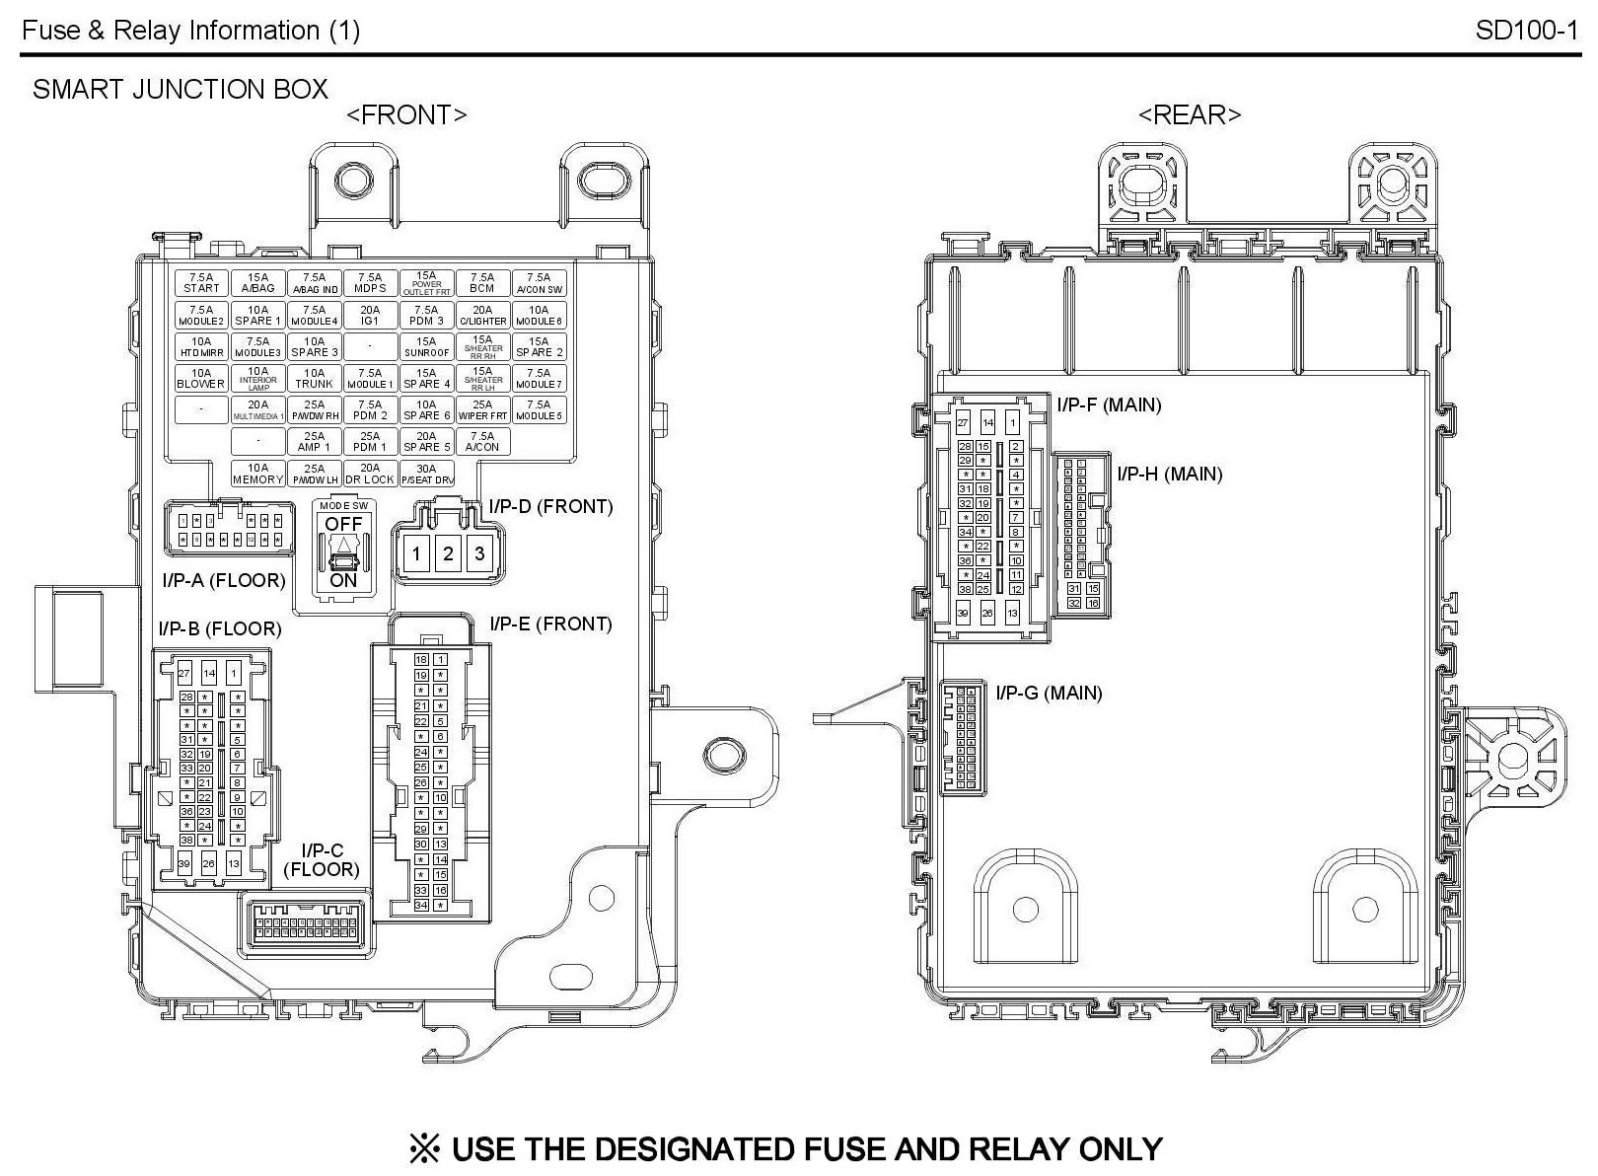 2012 Hyundai Elantra Fuse Box Diagram